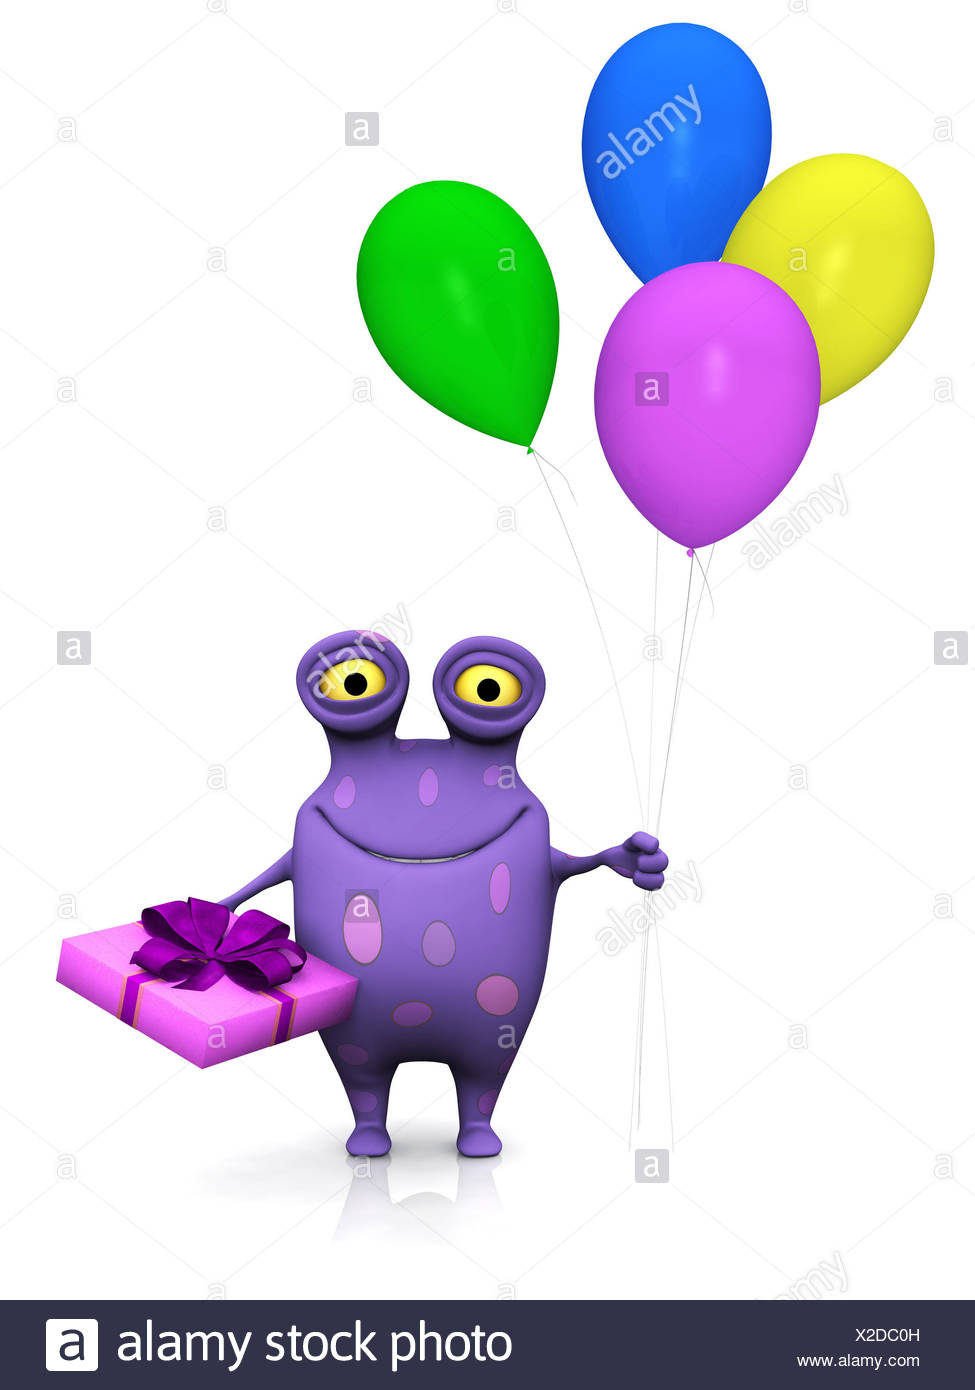 A Cute Charming Cartoon Monster Holding A Birthday Gift In One Hand